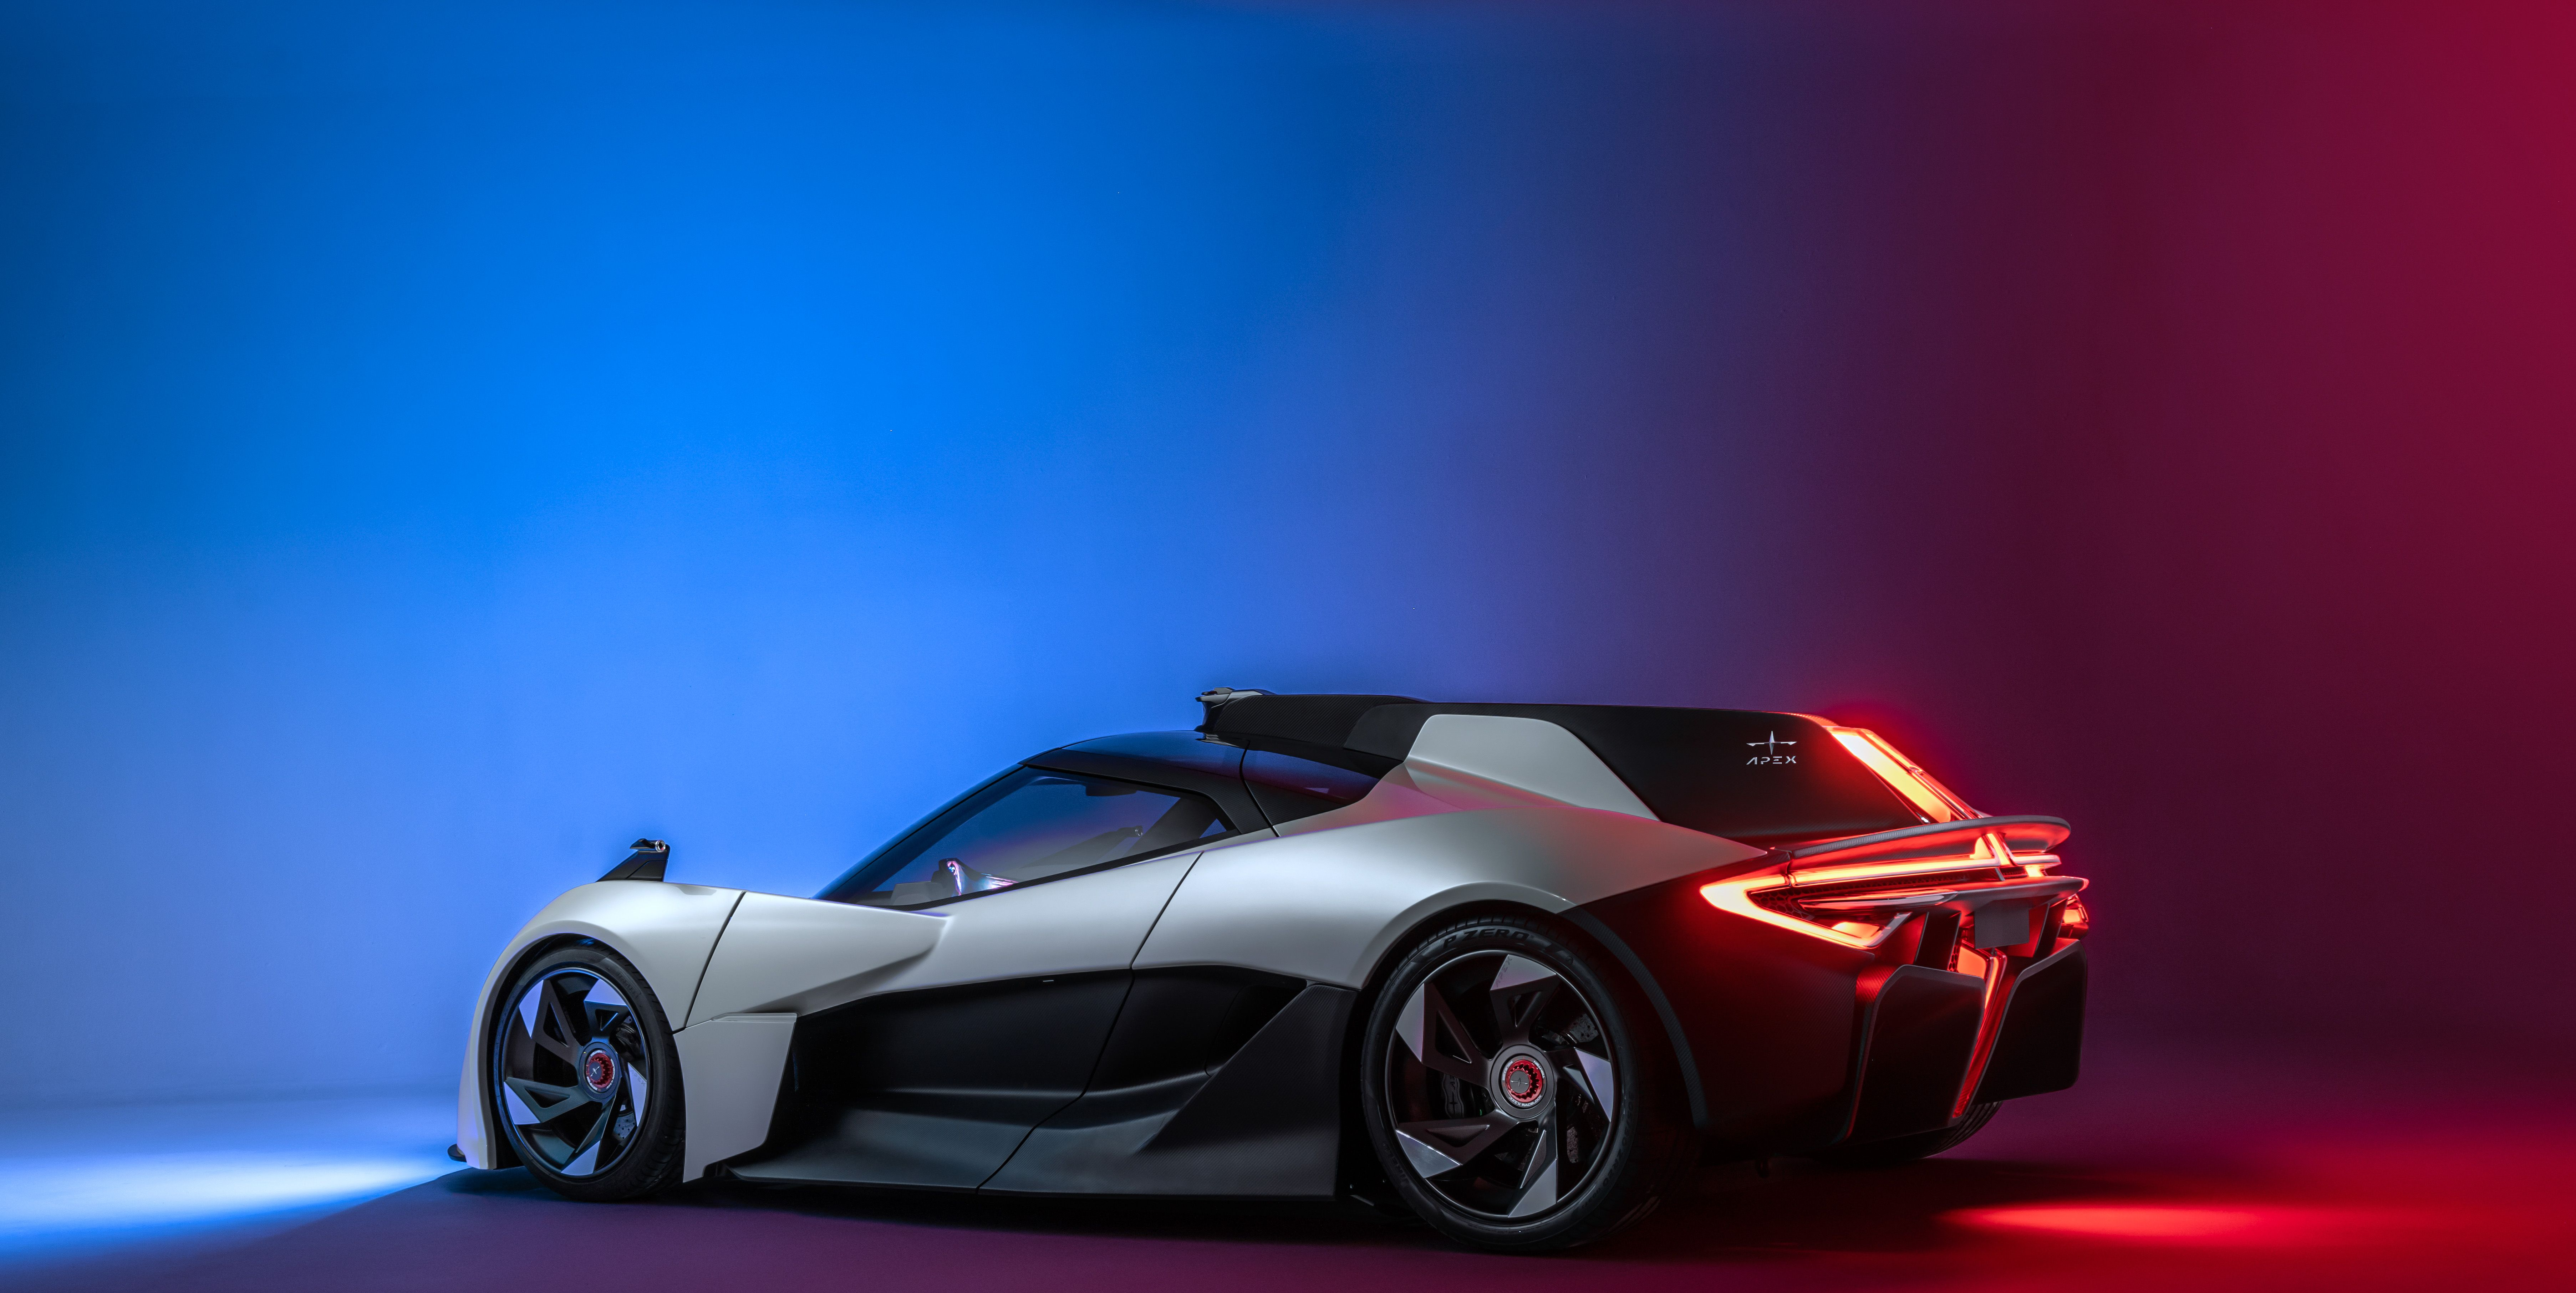 649-HP Apex AP-0 Lightweight Electric Sports Car Coming in 2022